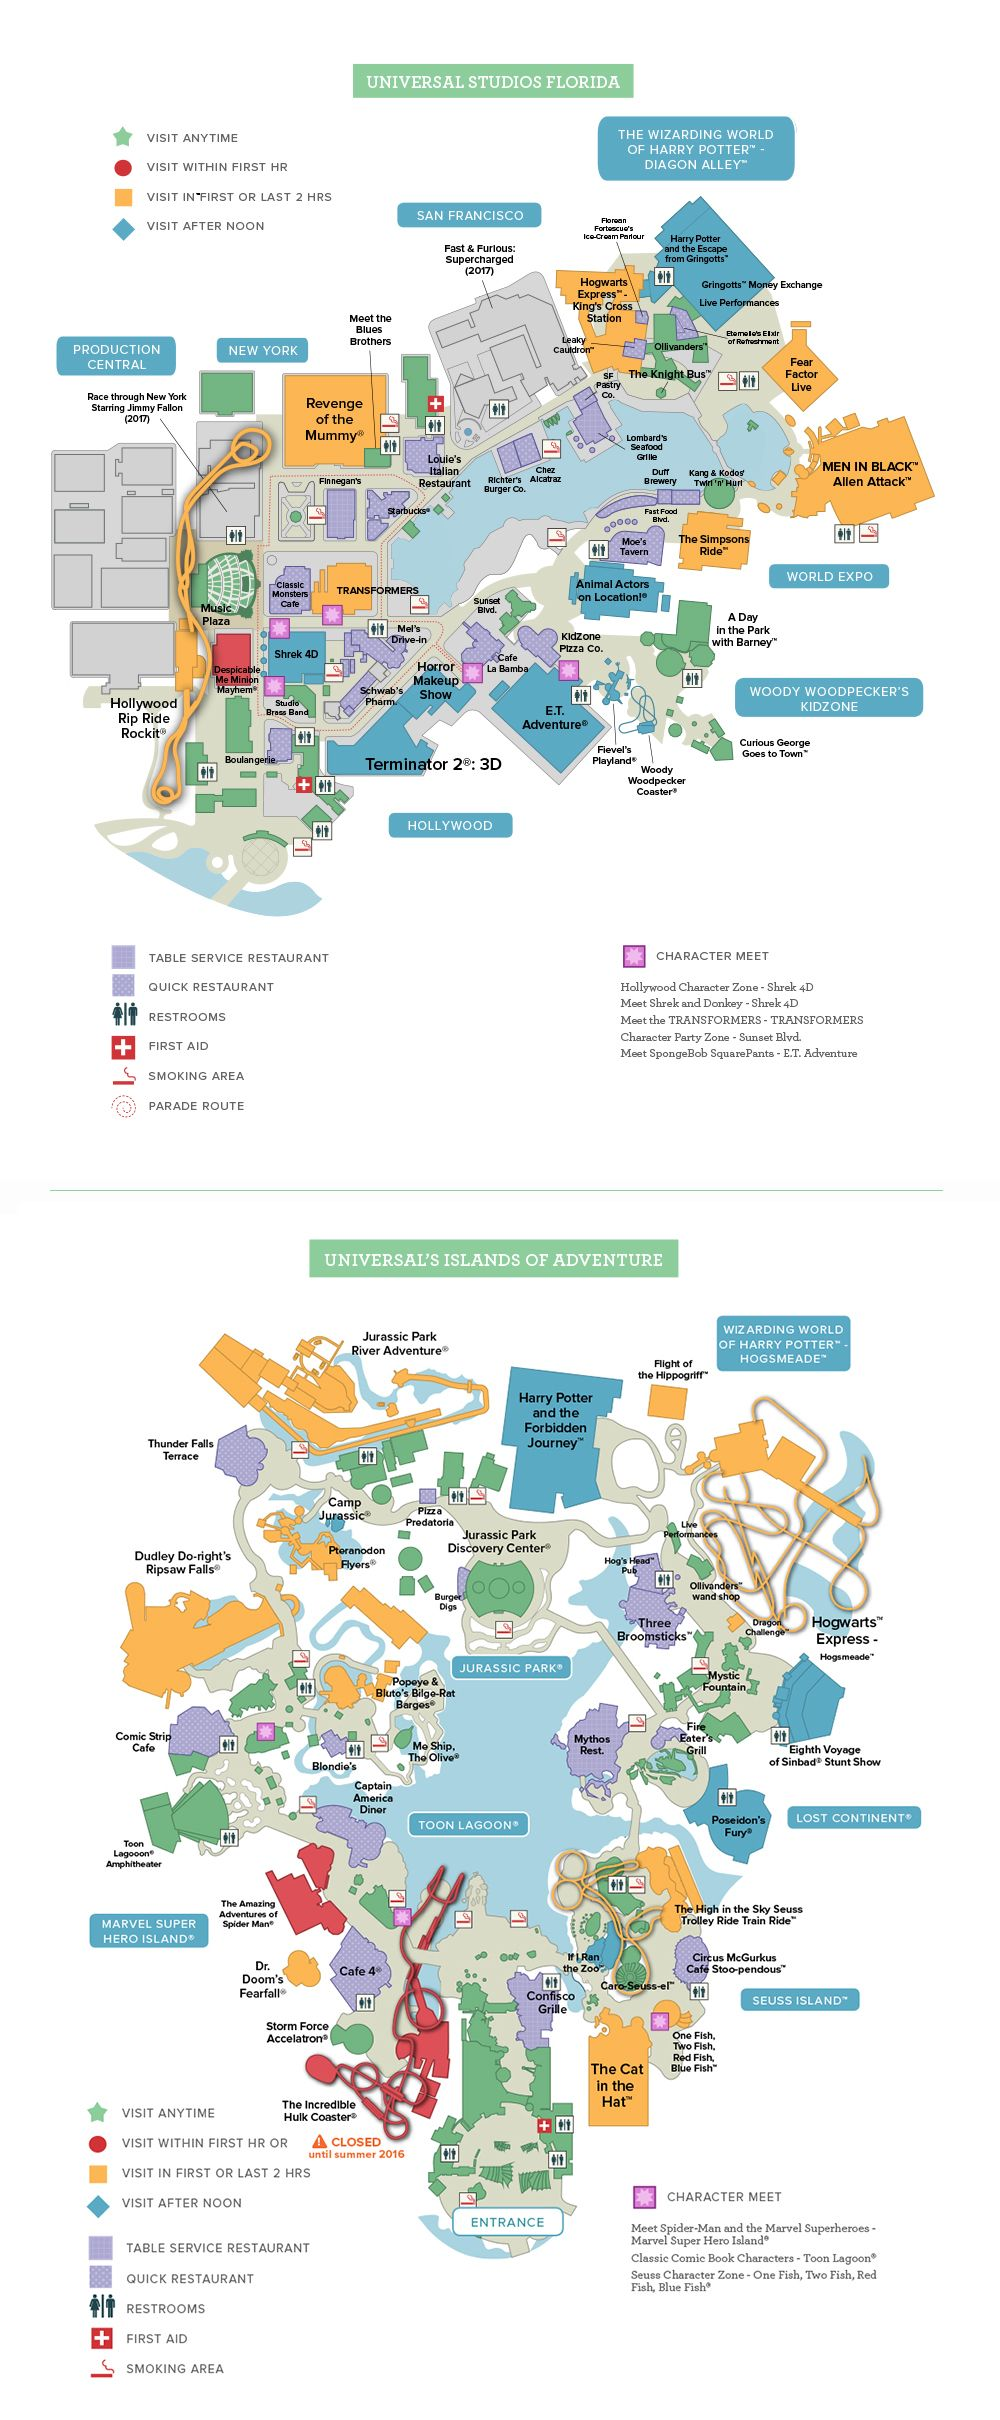 Universals Islands Of Adventure General Map Florida Vacation - Map of florida orlando area